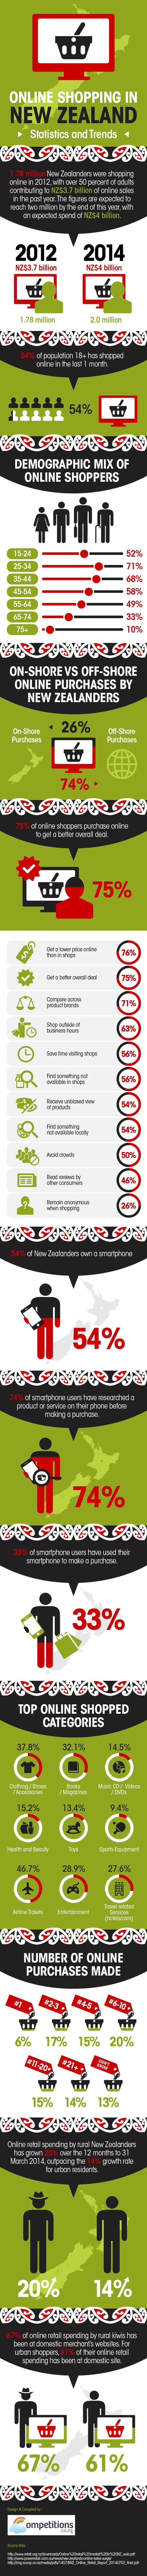 Online Shopping in New Zealand